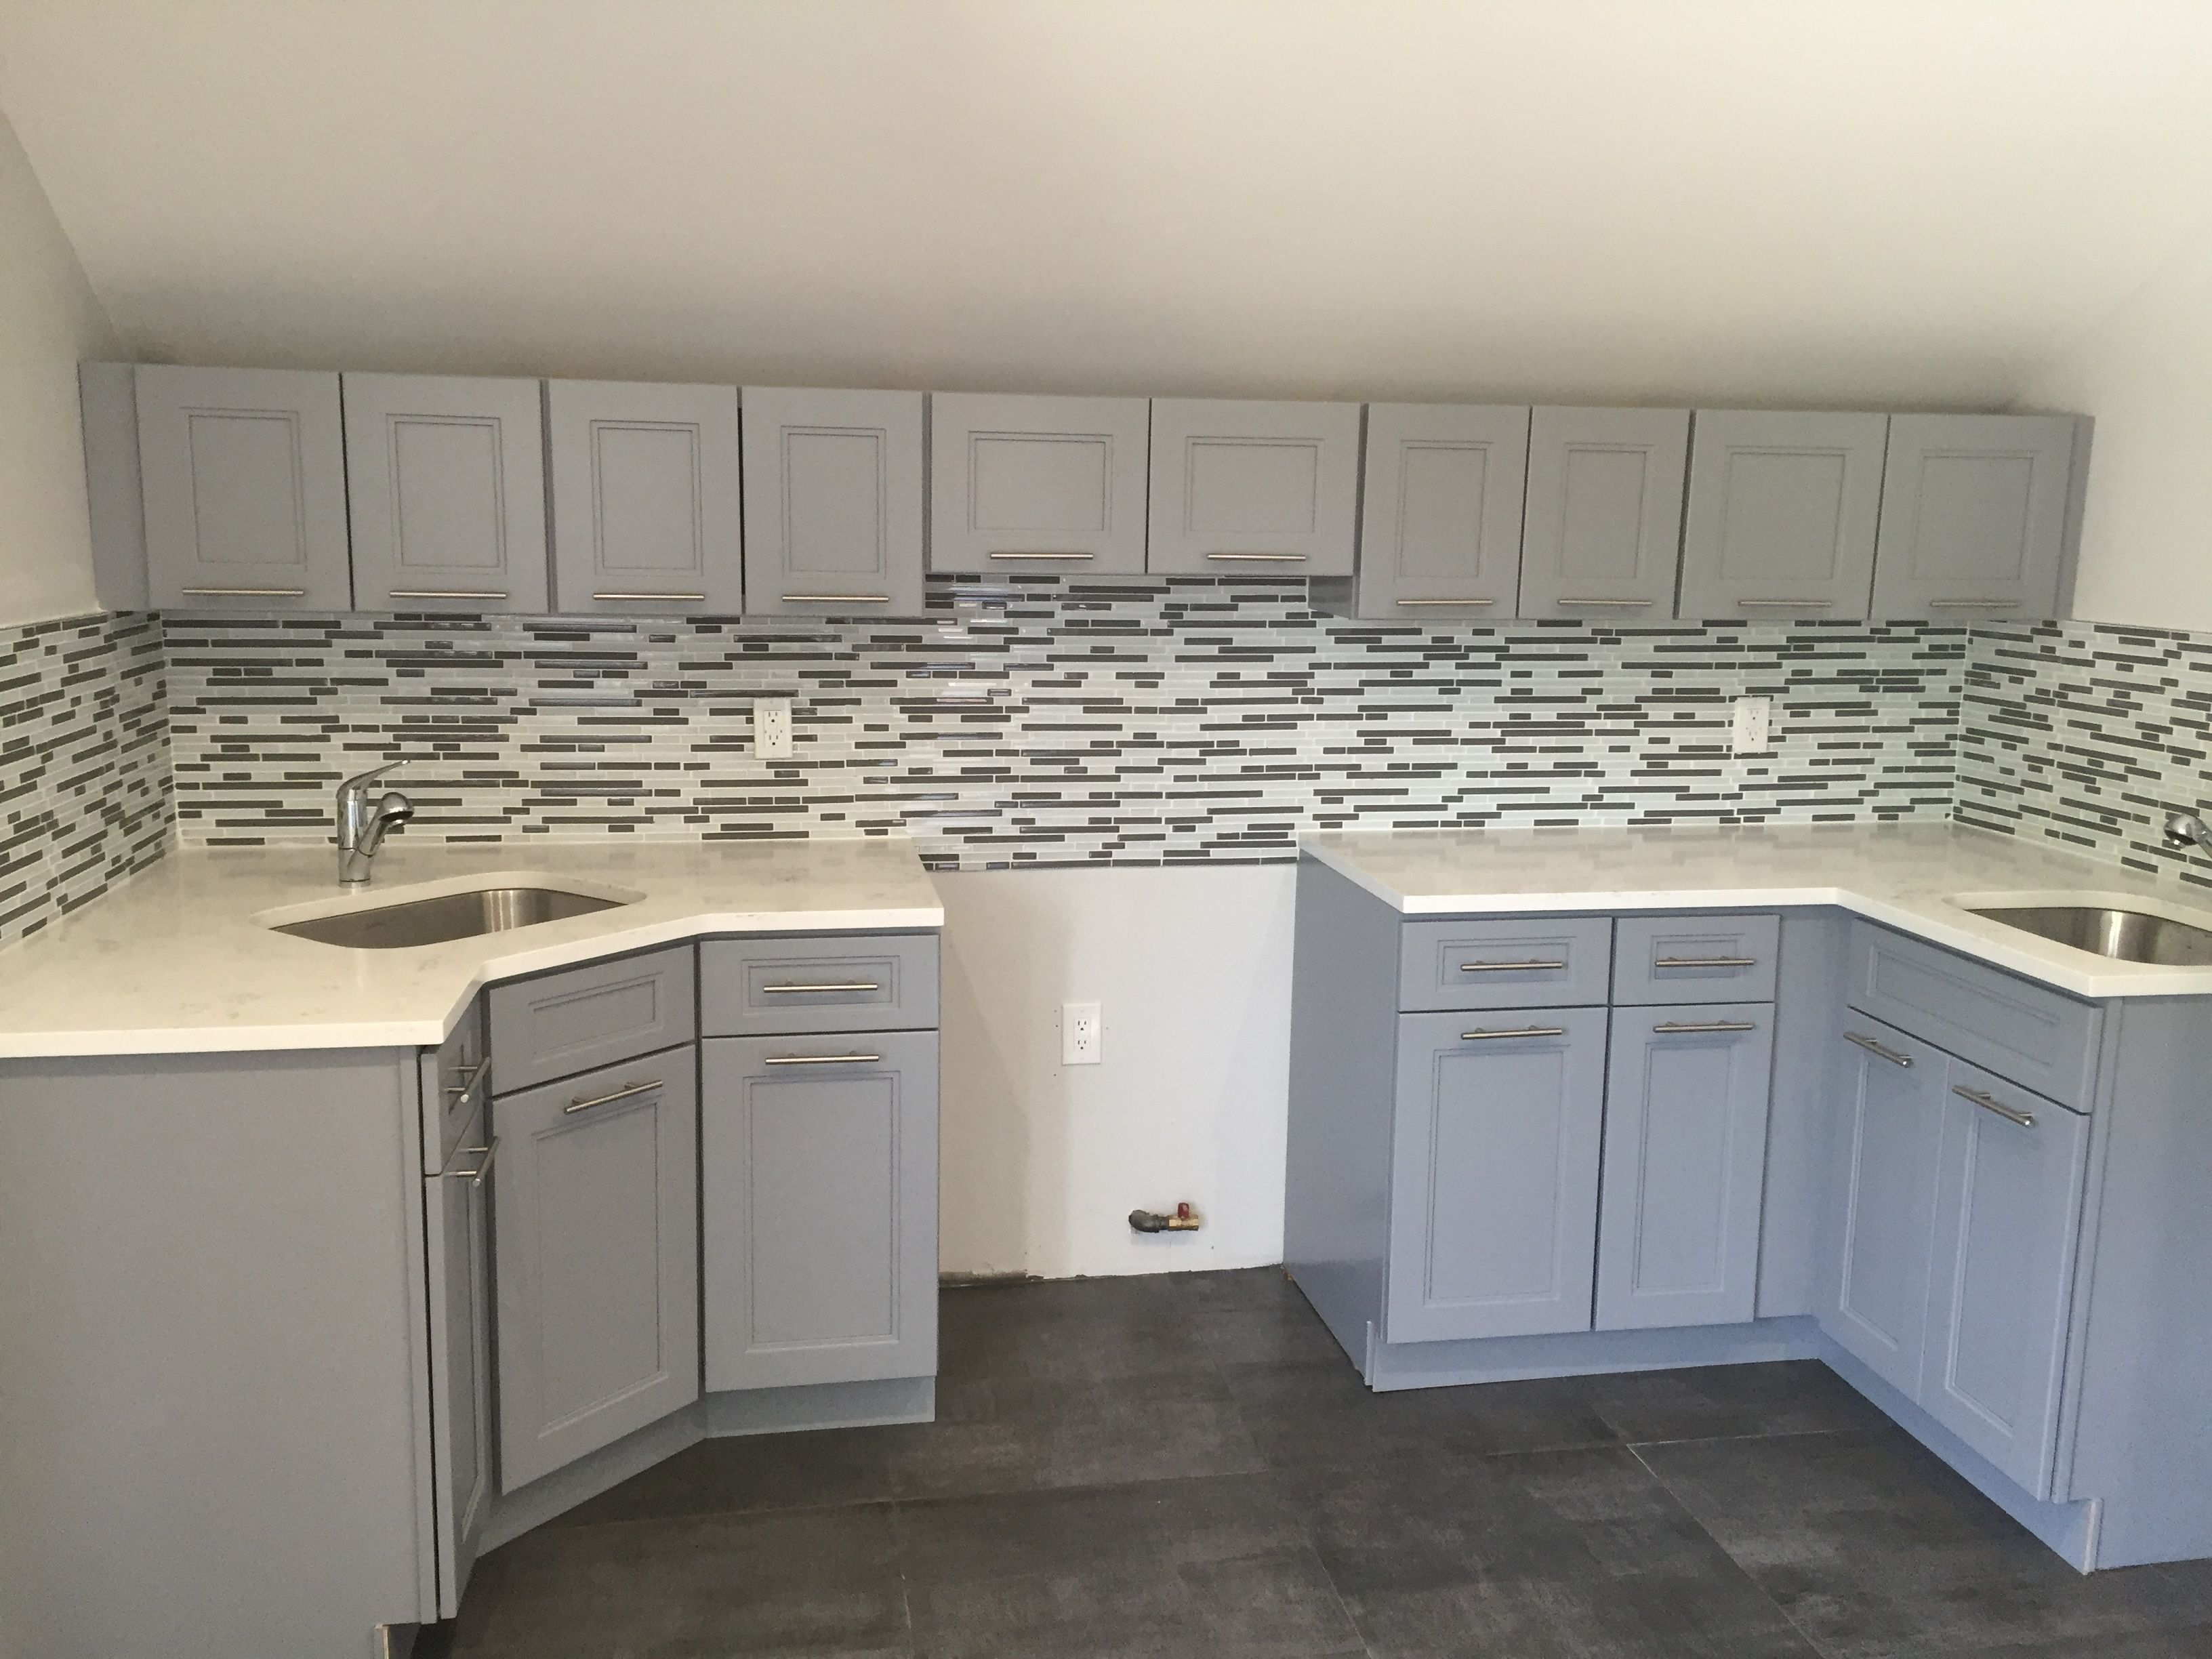 Light Grey Cabinets Are A Good Choice For Attic Kitchen To Keep It Light And Airy Kitc Kitchen Design Small Kitchen Cabinet Design Kitchen Cabinet Styles